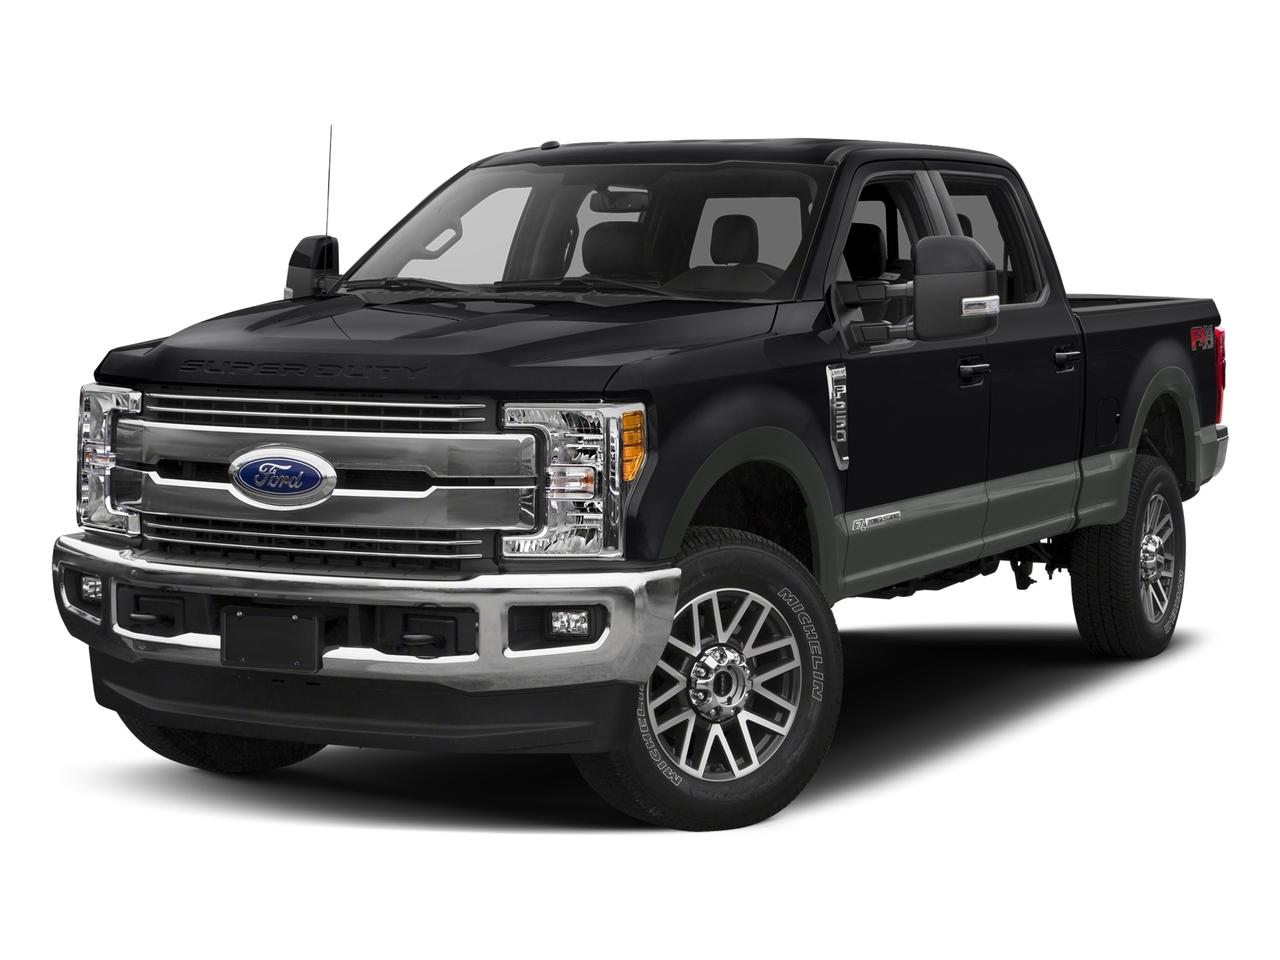 2017 Ford Super Duty F-250 SRW Vehicle Photo in Baton Rouge, LA 70806